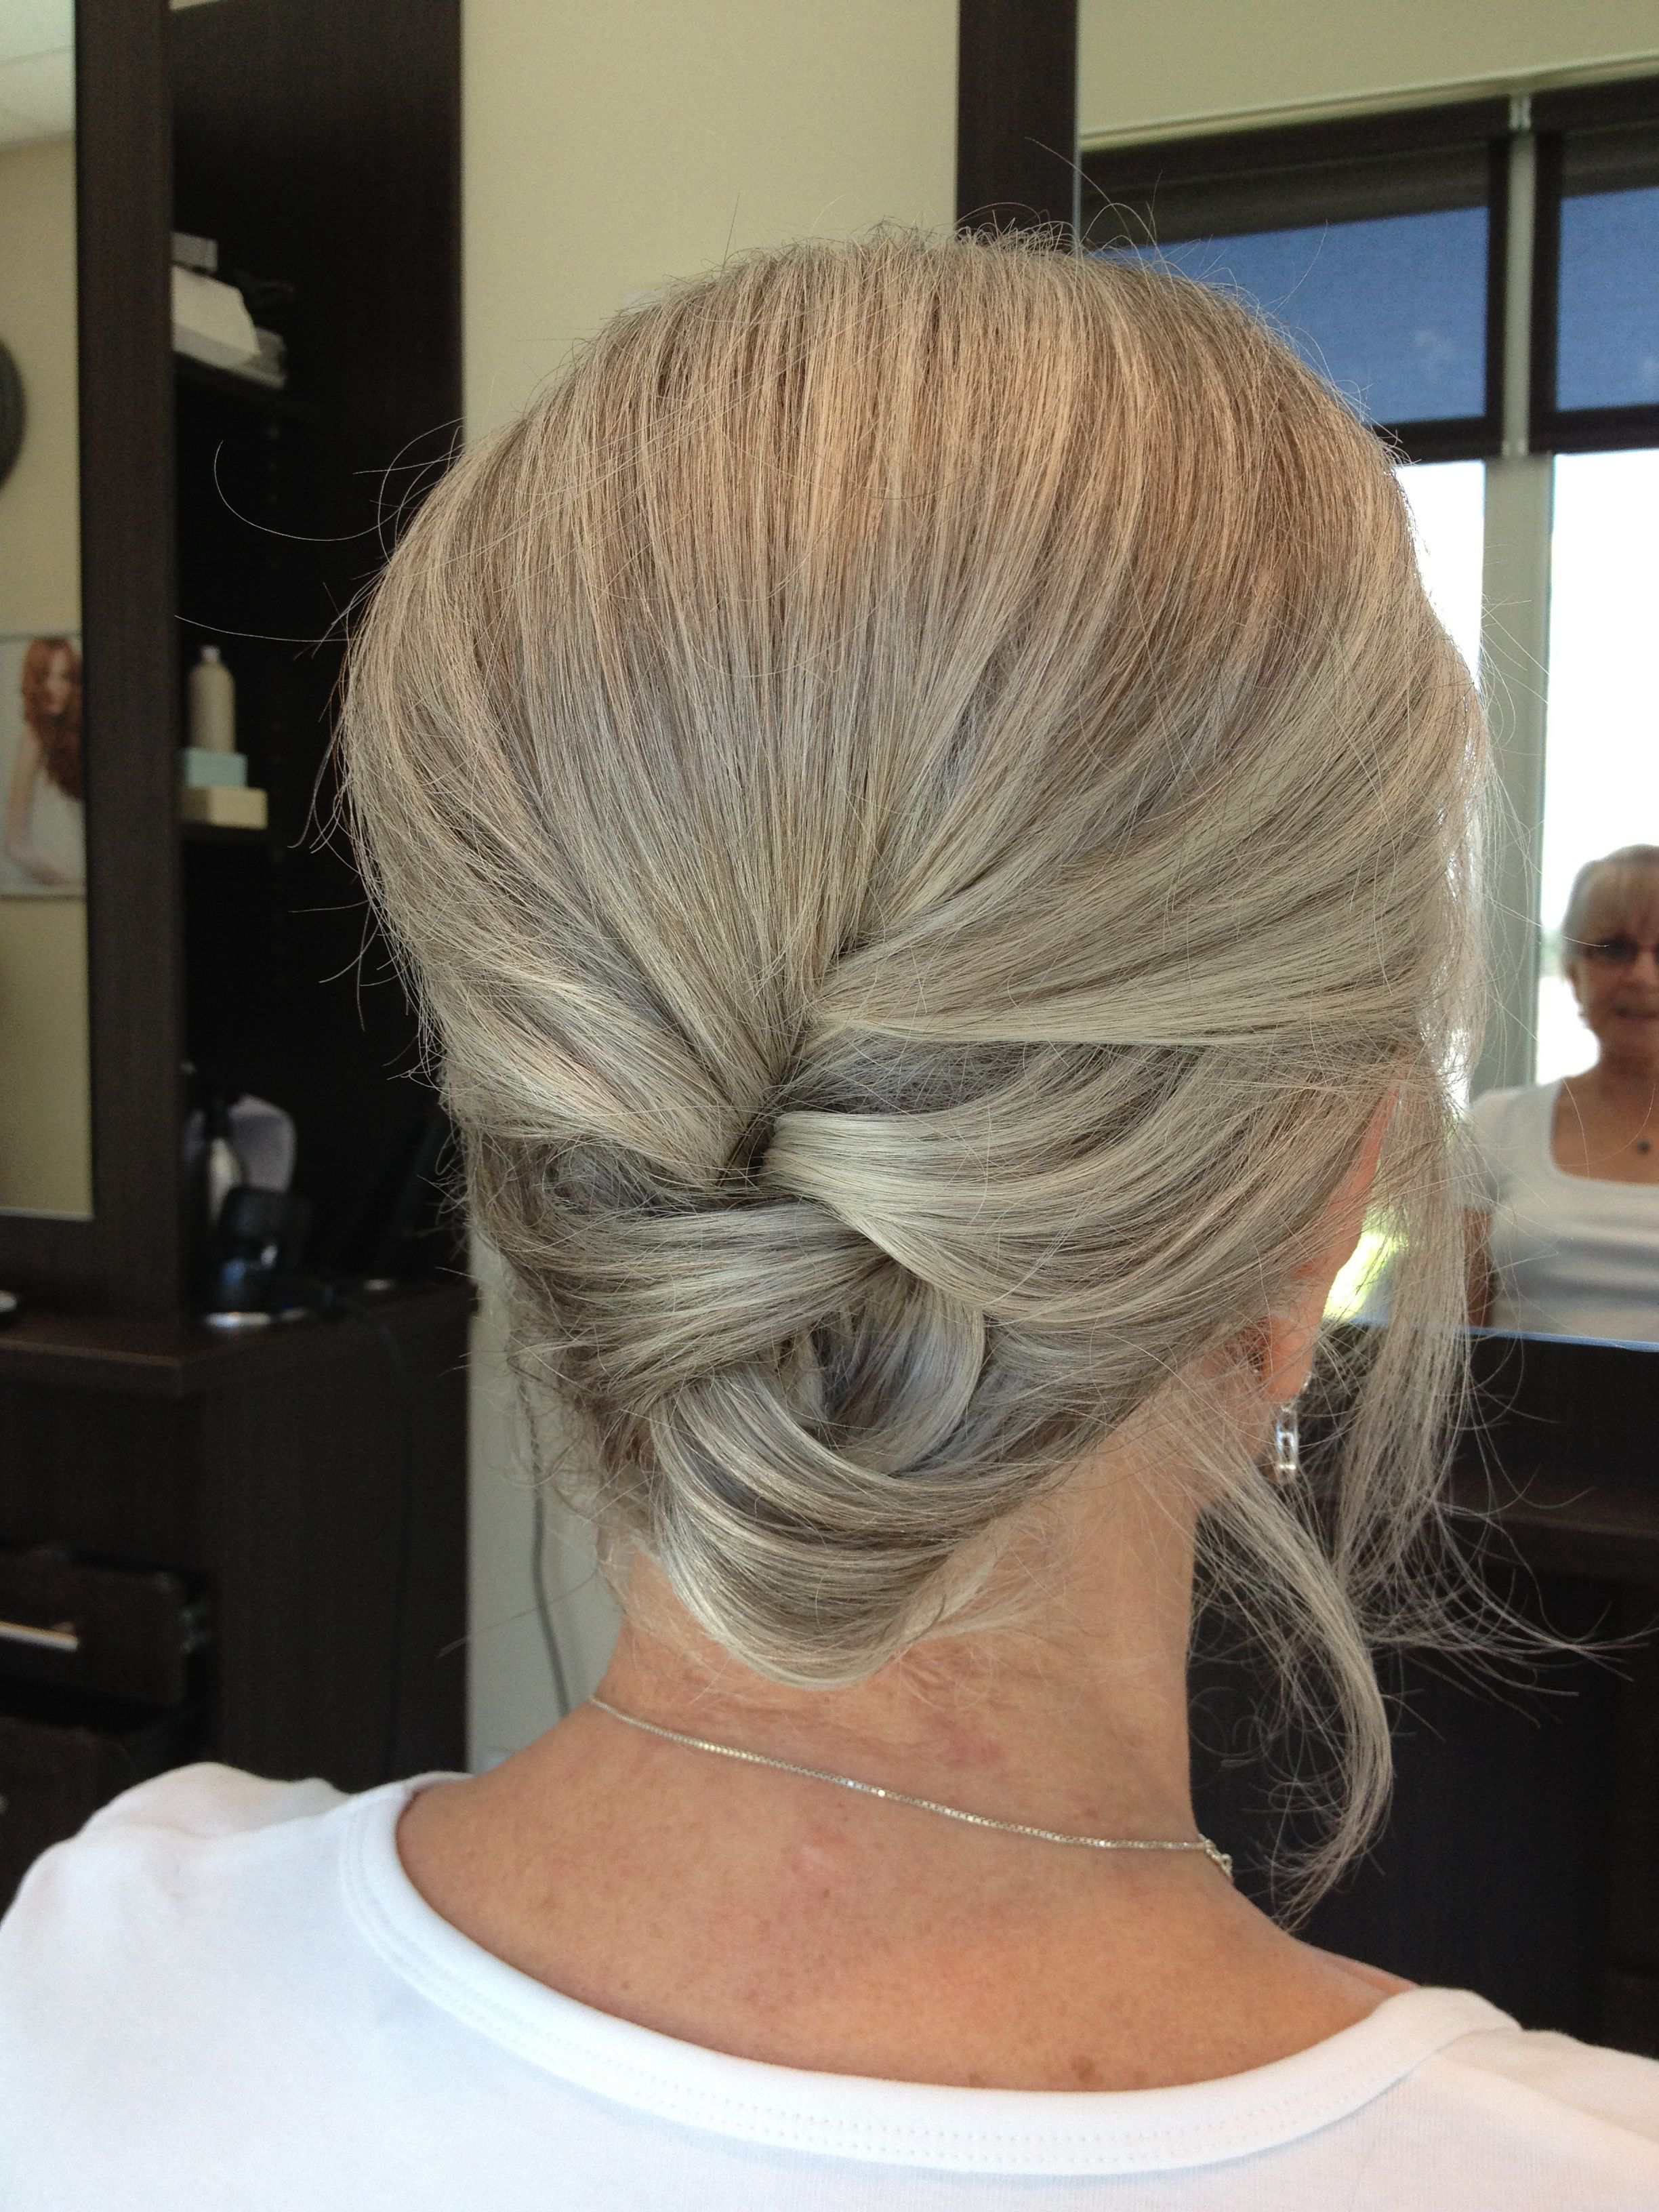 Updo For 50 And Over Women Updo Hairstyles For Women Over 50